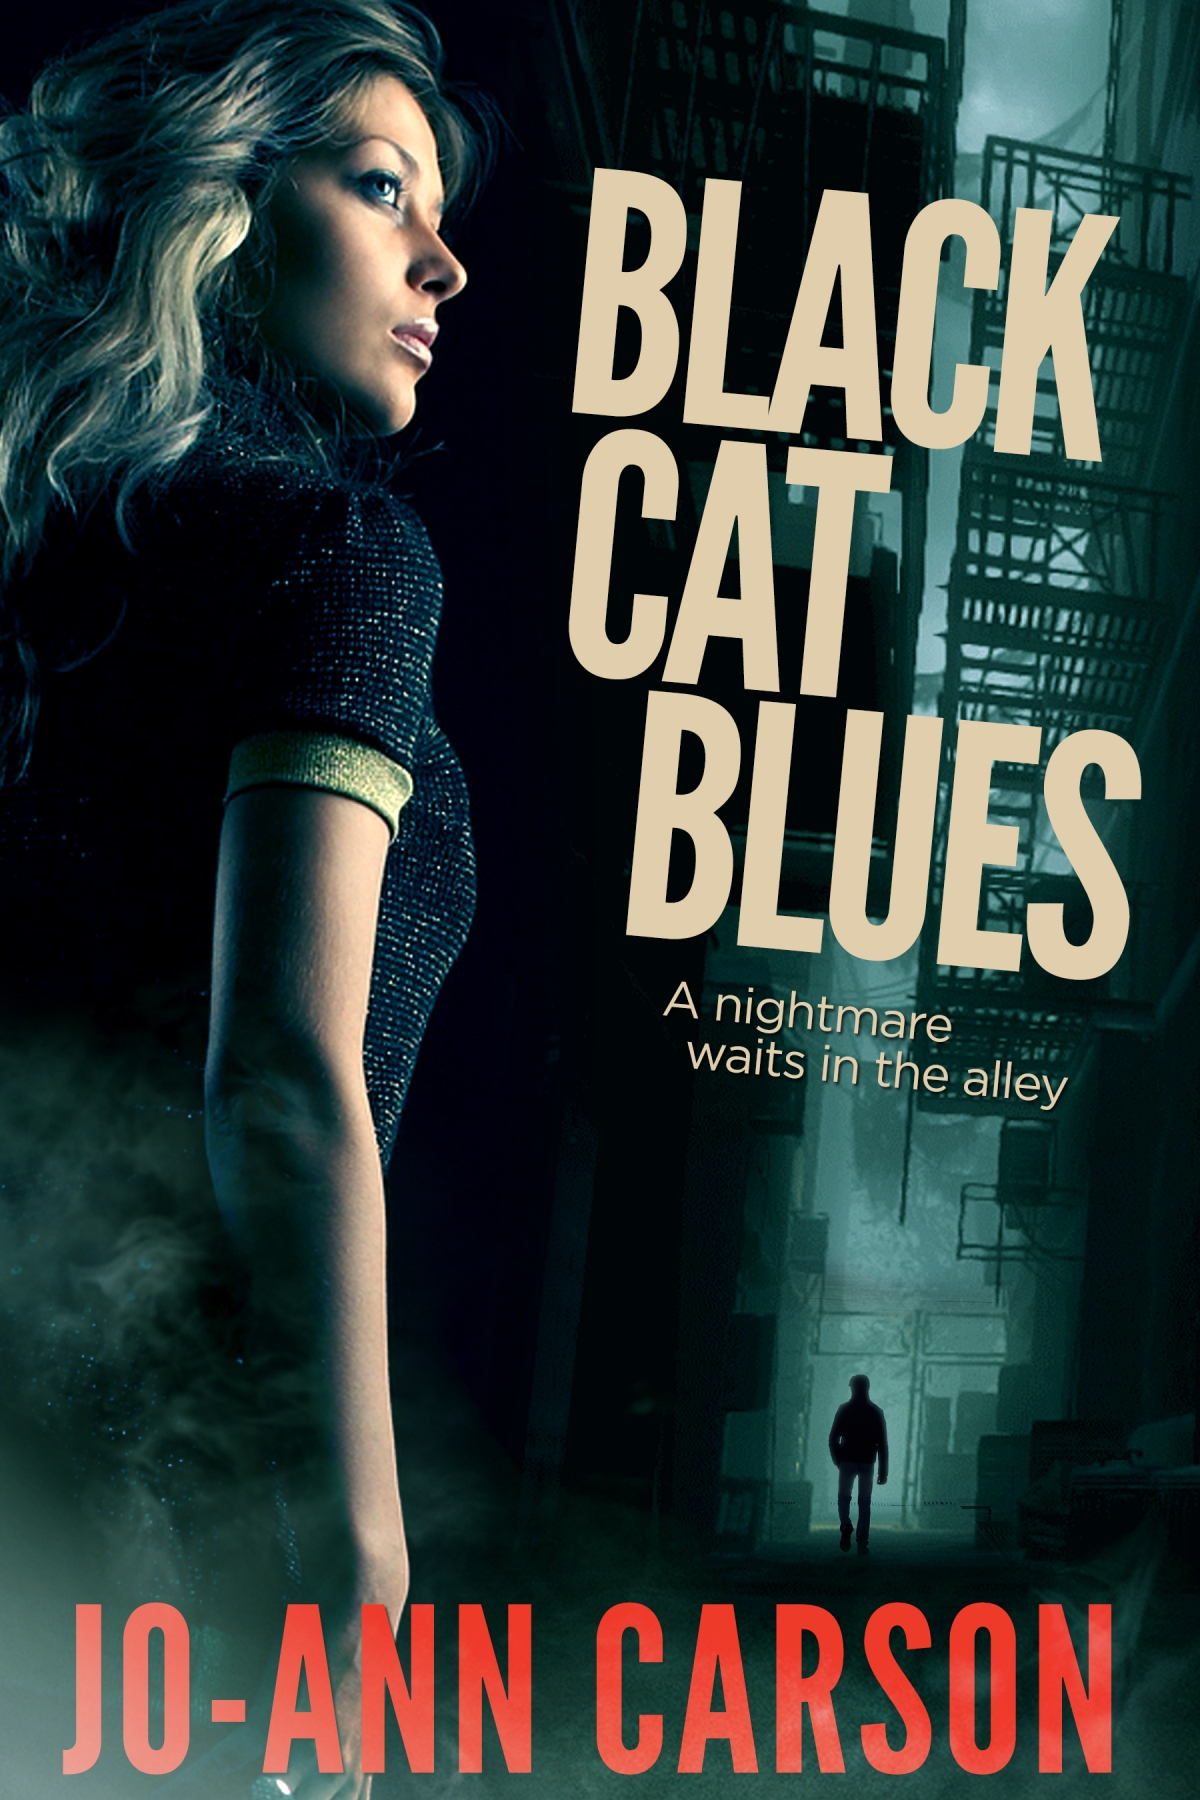 First 10 Reviews for Black Cat Blues #Suspense #Vancouver